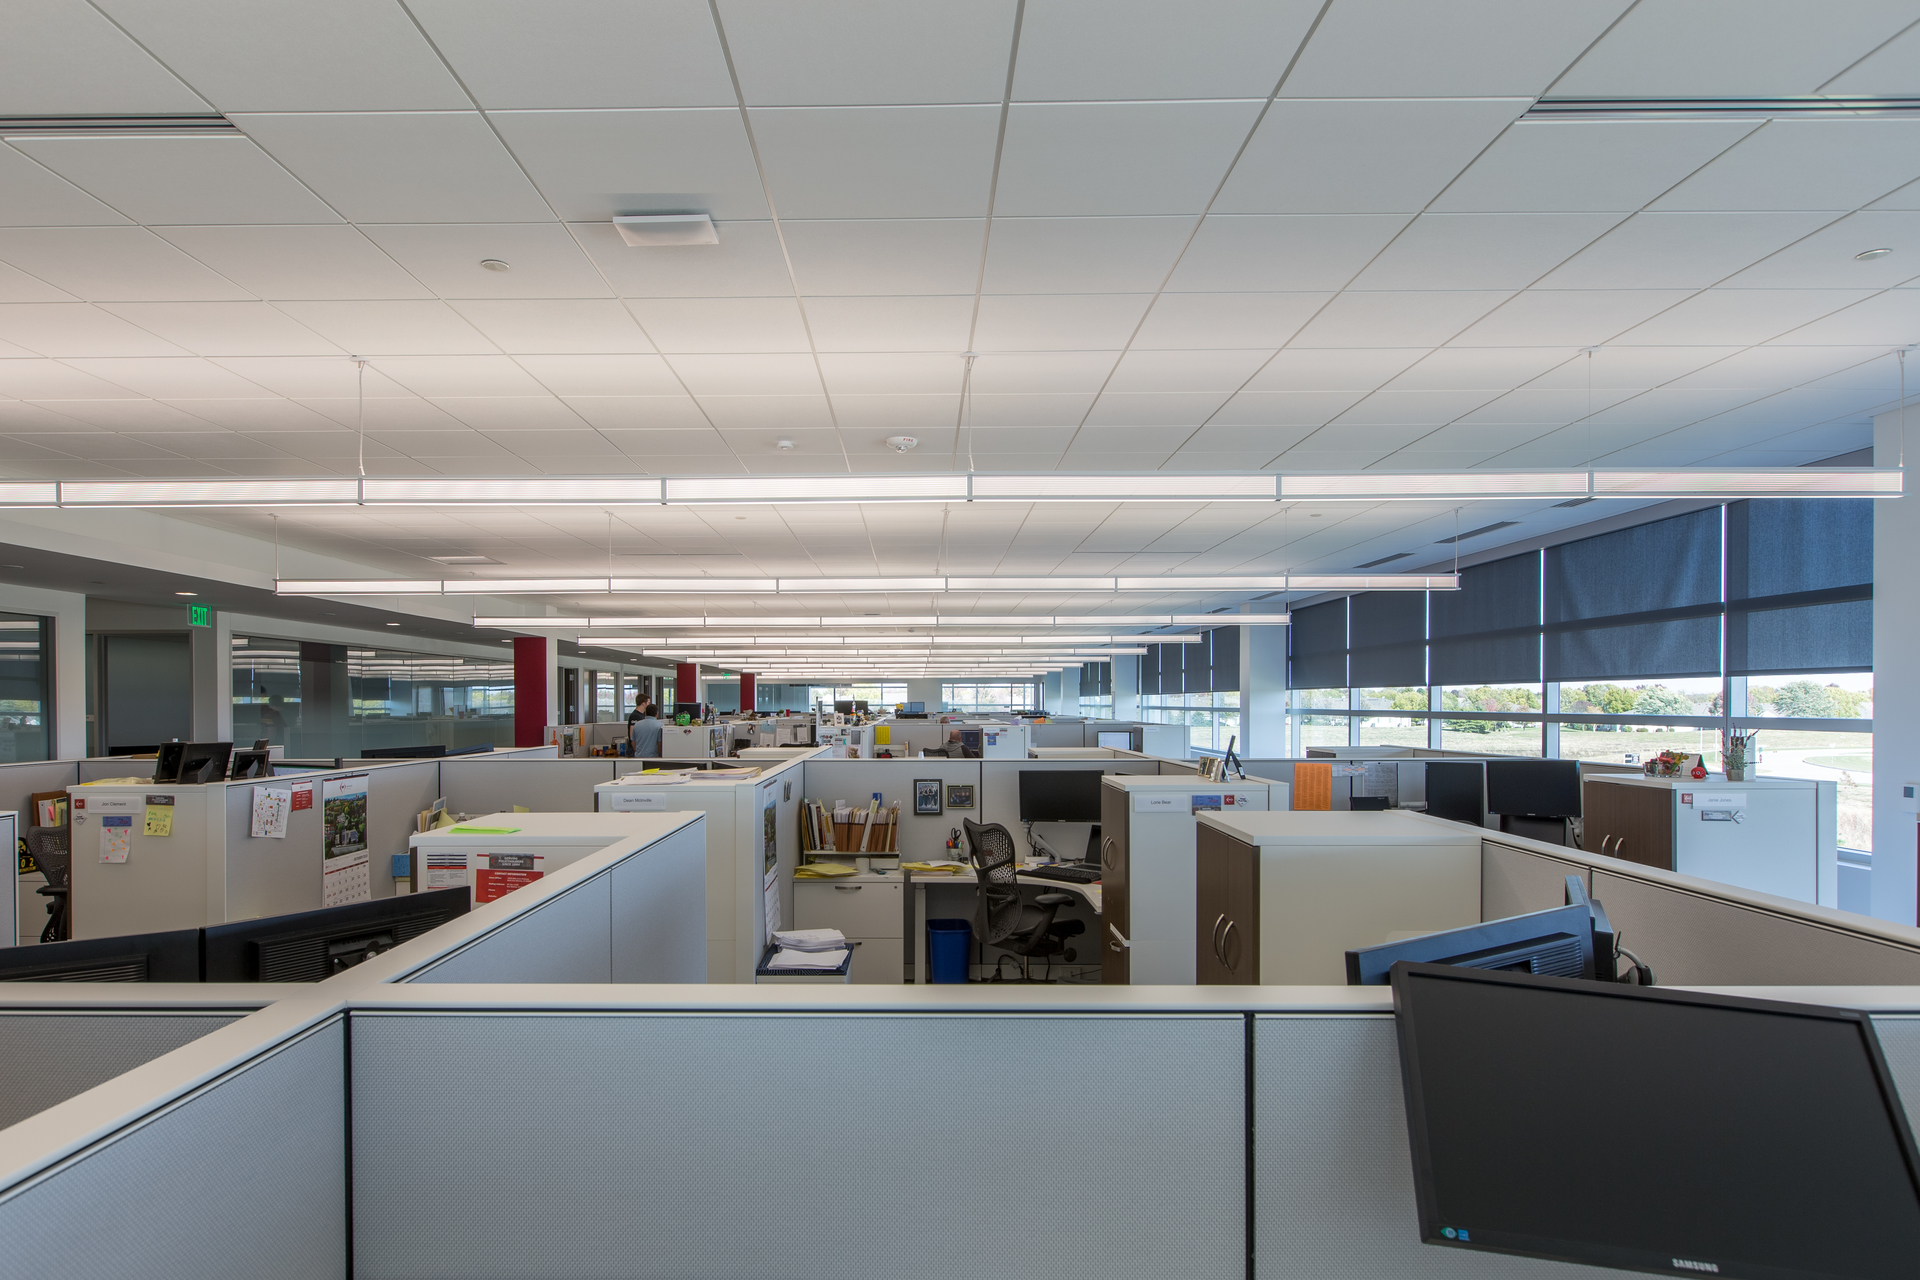 The open office design allows for ample natural light through the smart shading system and expansive windows. Eye-catching pendant lights also help provide comfortable lighting throughout the building. Photography by Alex Benge.